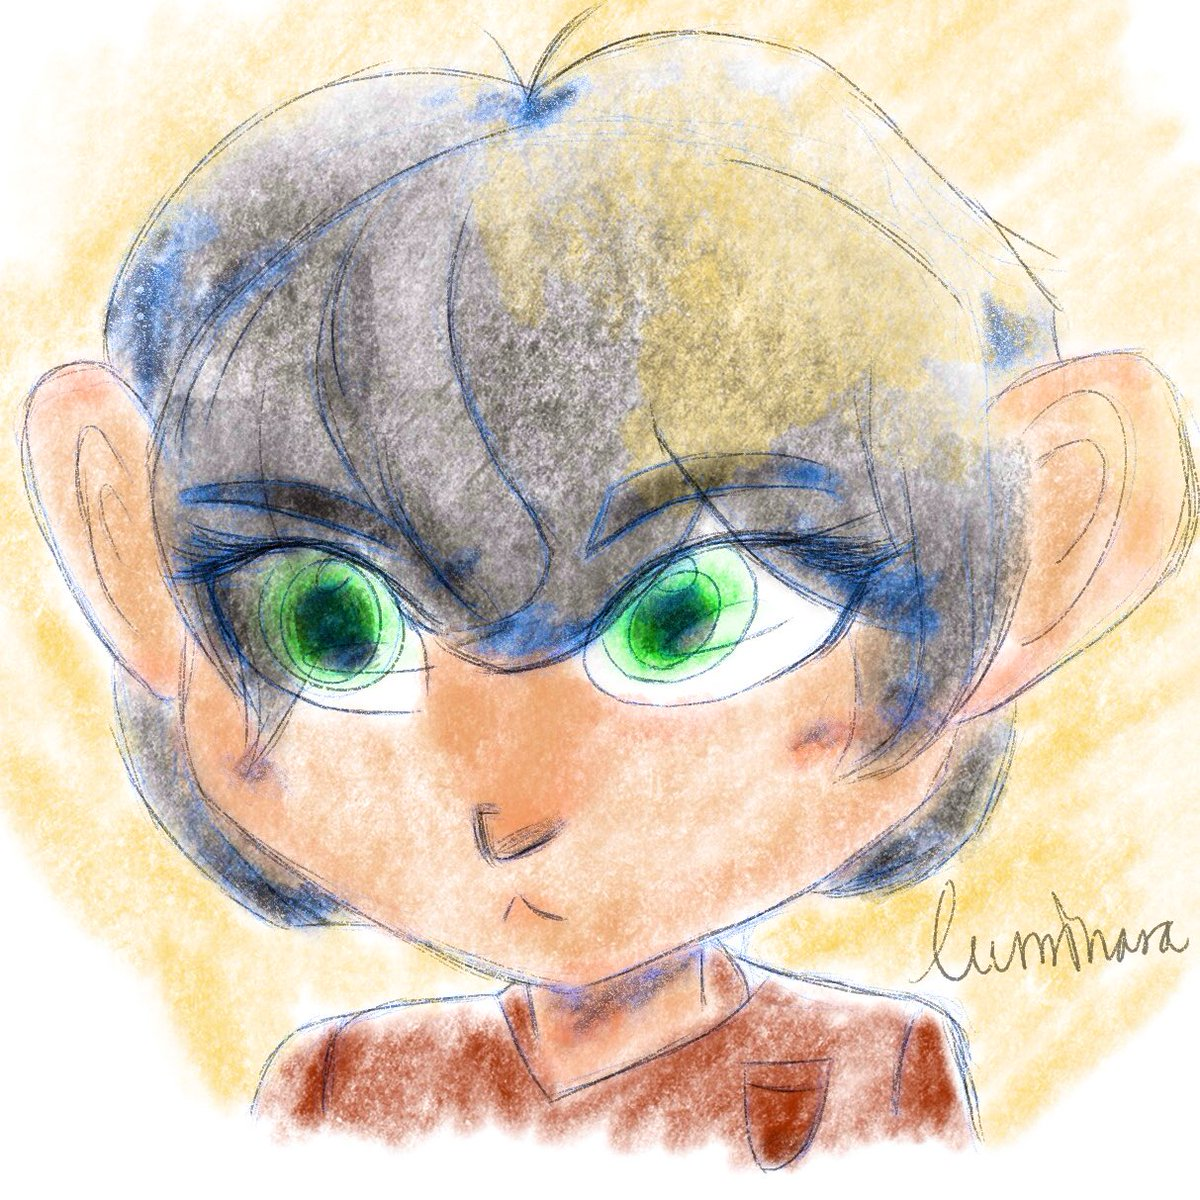 a mini #damianwayne aka a regular damian wayne! dami here is all pencil & charcoal brushes, for a pretty & soft vibe since he tries his hardest to be anything but. i thought it'd be cute! 😌  #dc #comics #robin #batman #fanart #art https://t.co/A4CS5acwxc